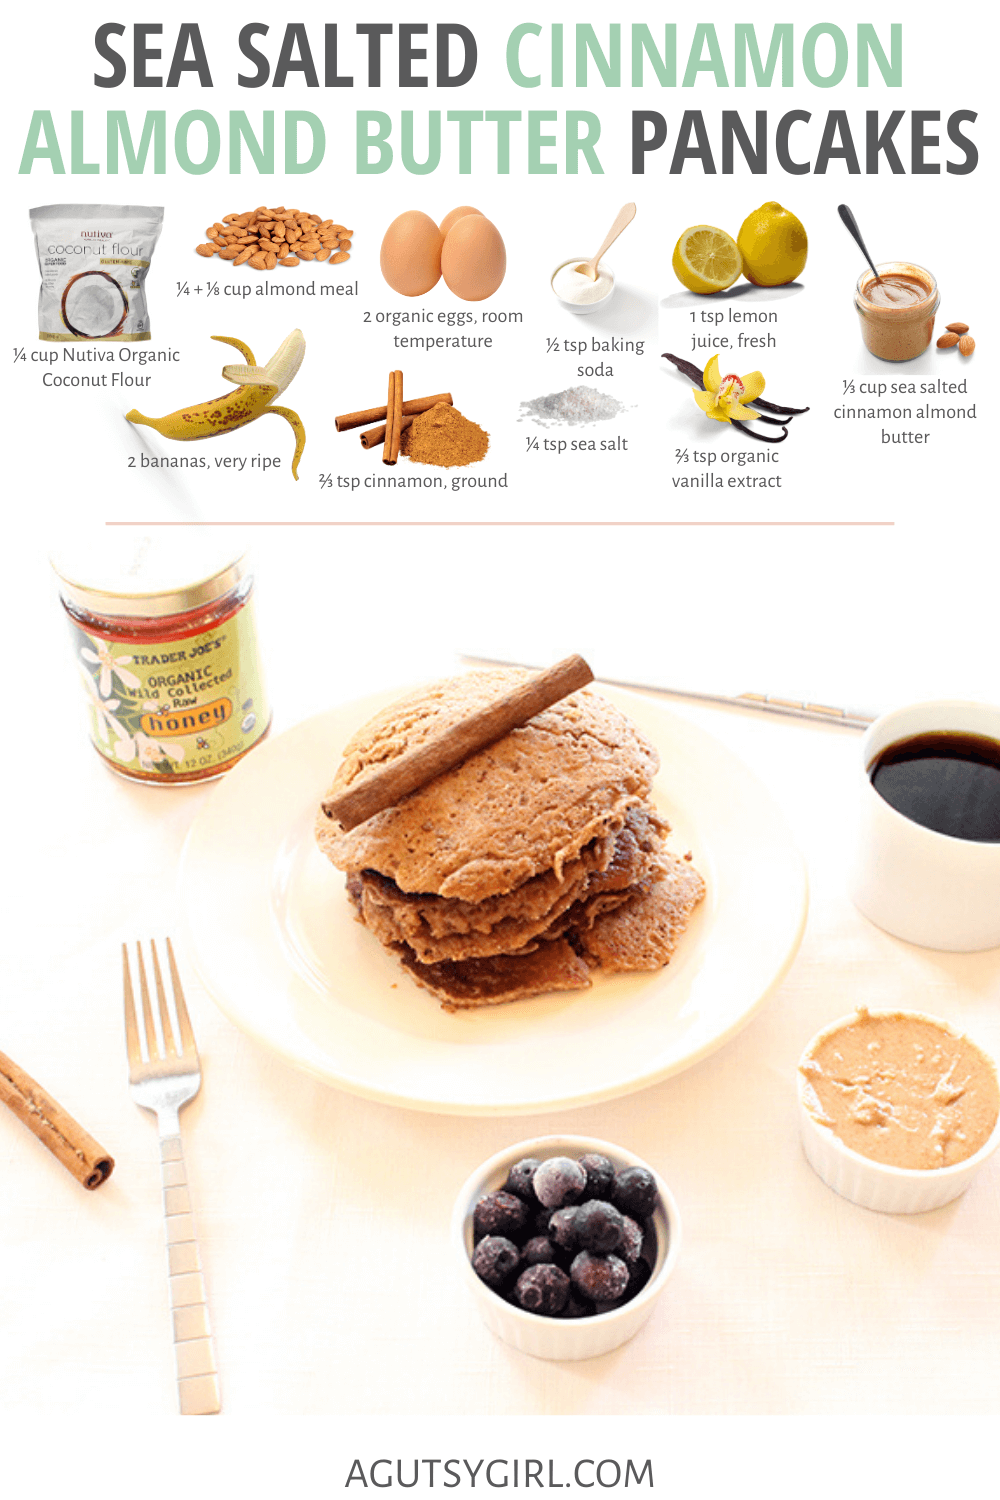 Sea Salted Cinnamon Almond Butter Pancakes agutsygirl.com #glutenfreepancakes #pancakes #glutenfree #recipes